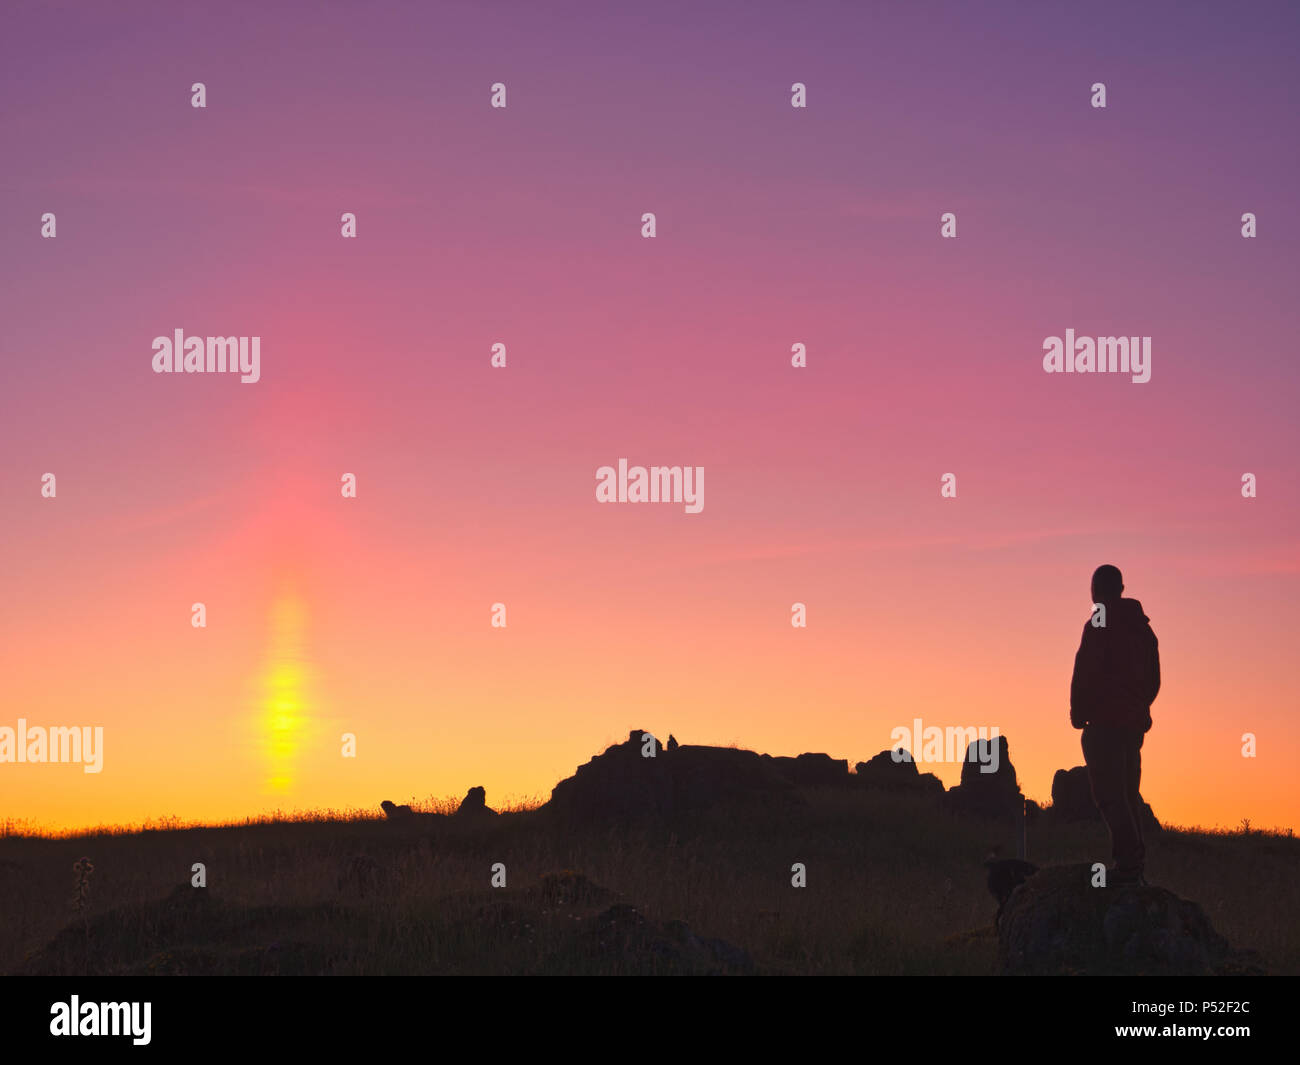 Brassington, Derbyshire, UK. 24th June, 2018. Weather UK: person watching the sun pillar solar column during an amazing sunset at Harborough Rocks near Brassington & the High Peak Trail, Derbyshire, Peak District National Park Credit: Doug Blane/Alamy Live NewsStock Photo